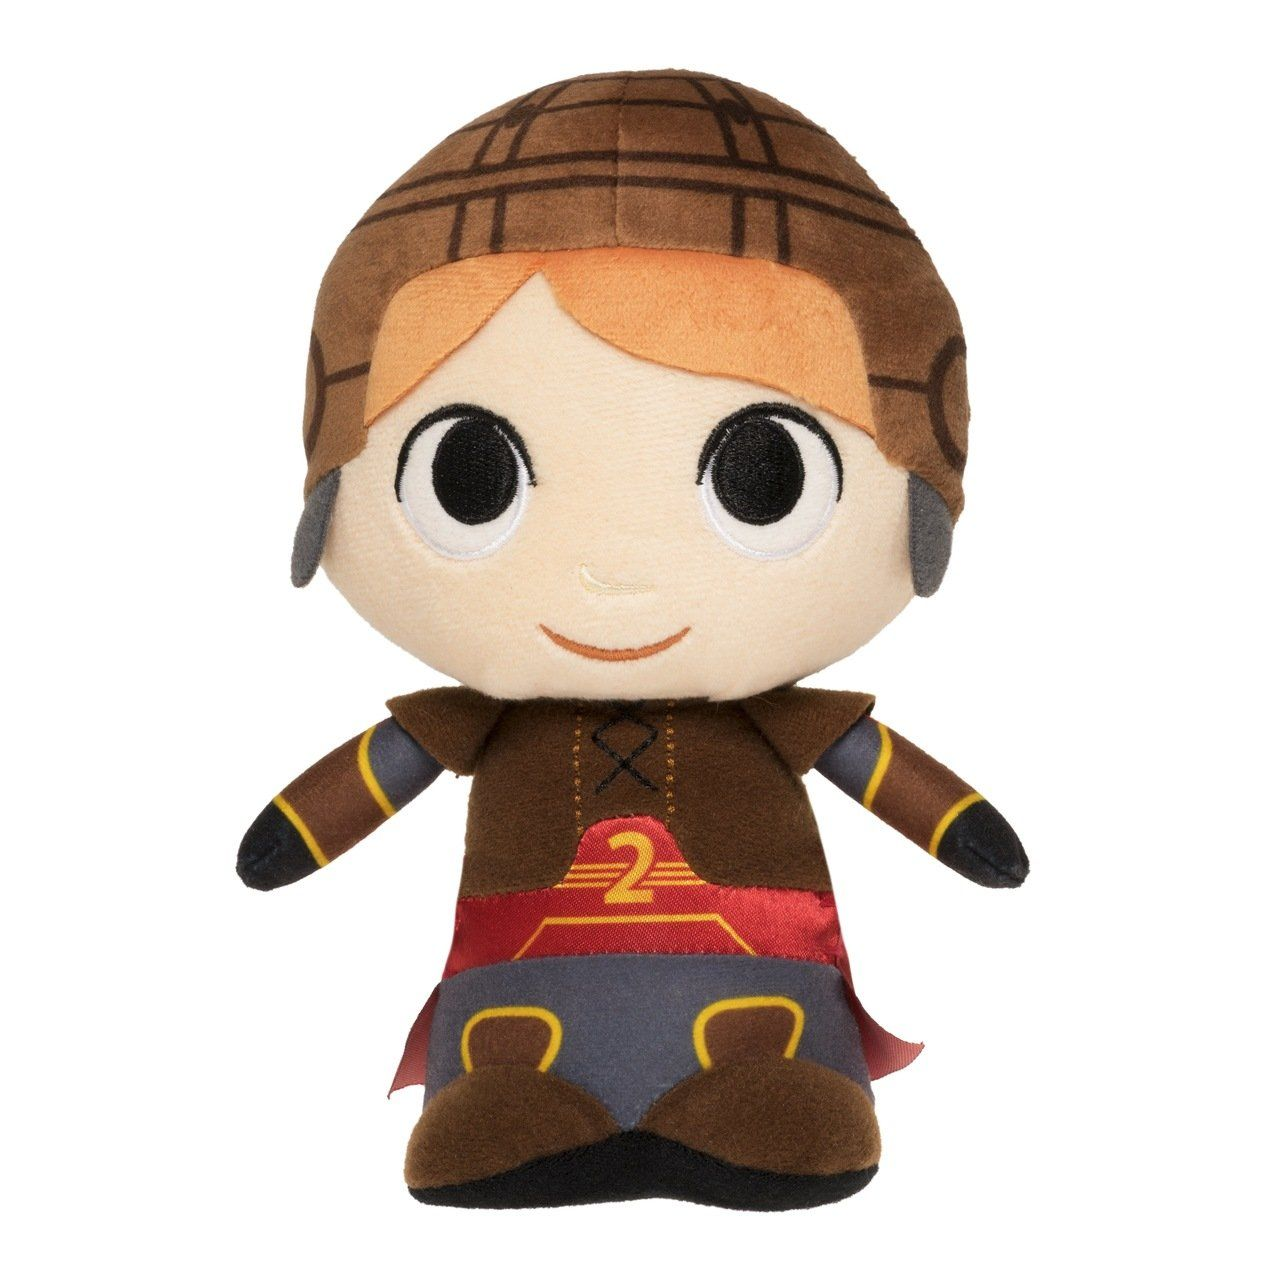 PRÉ VENDA: Pelúcia Ron Weasley Uniforme de Quadribol - Harry Potter - Funko